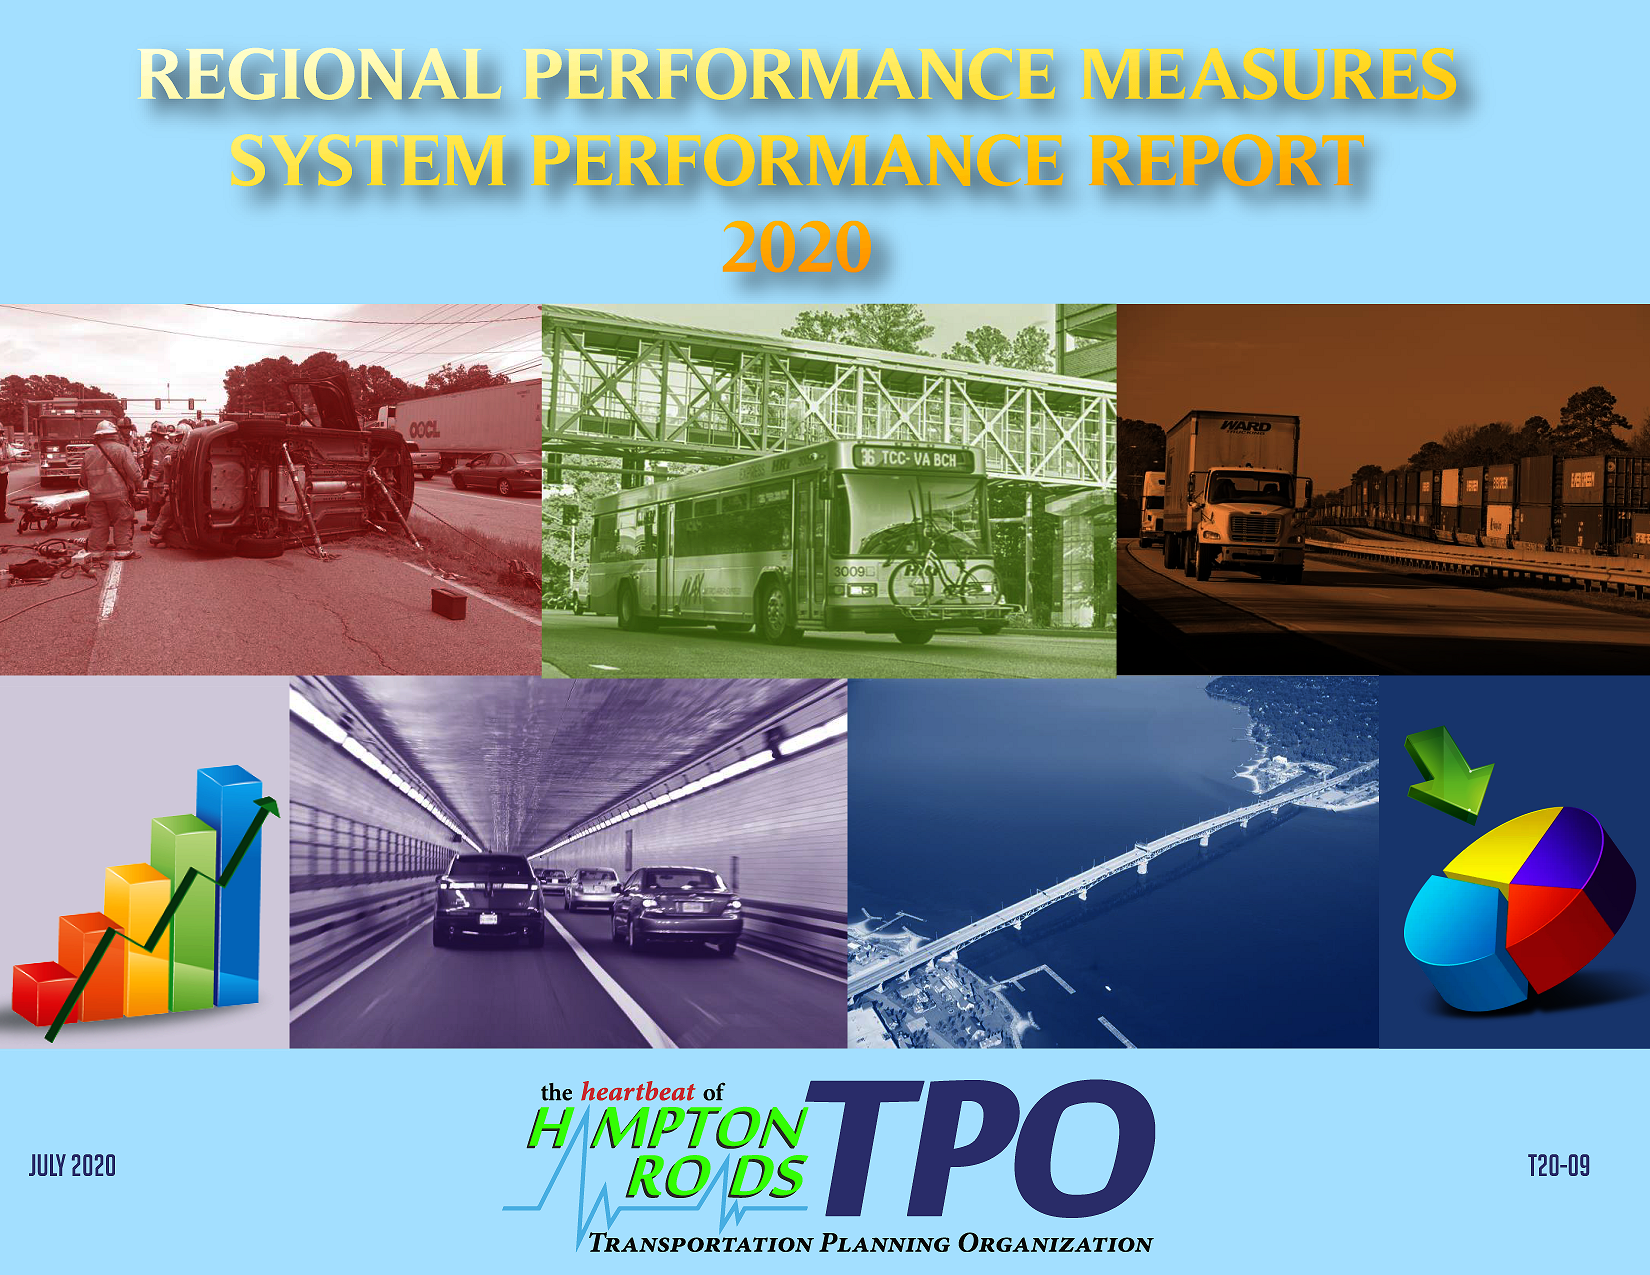 Regional Performance Measures System Performance 2020 Cover